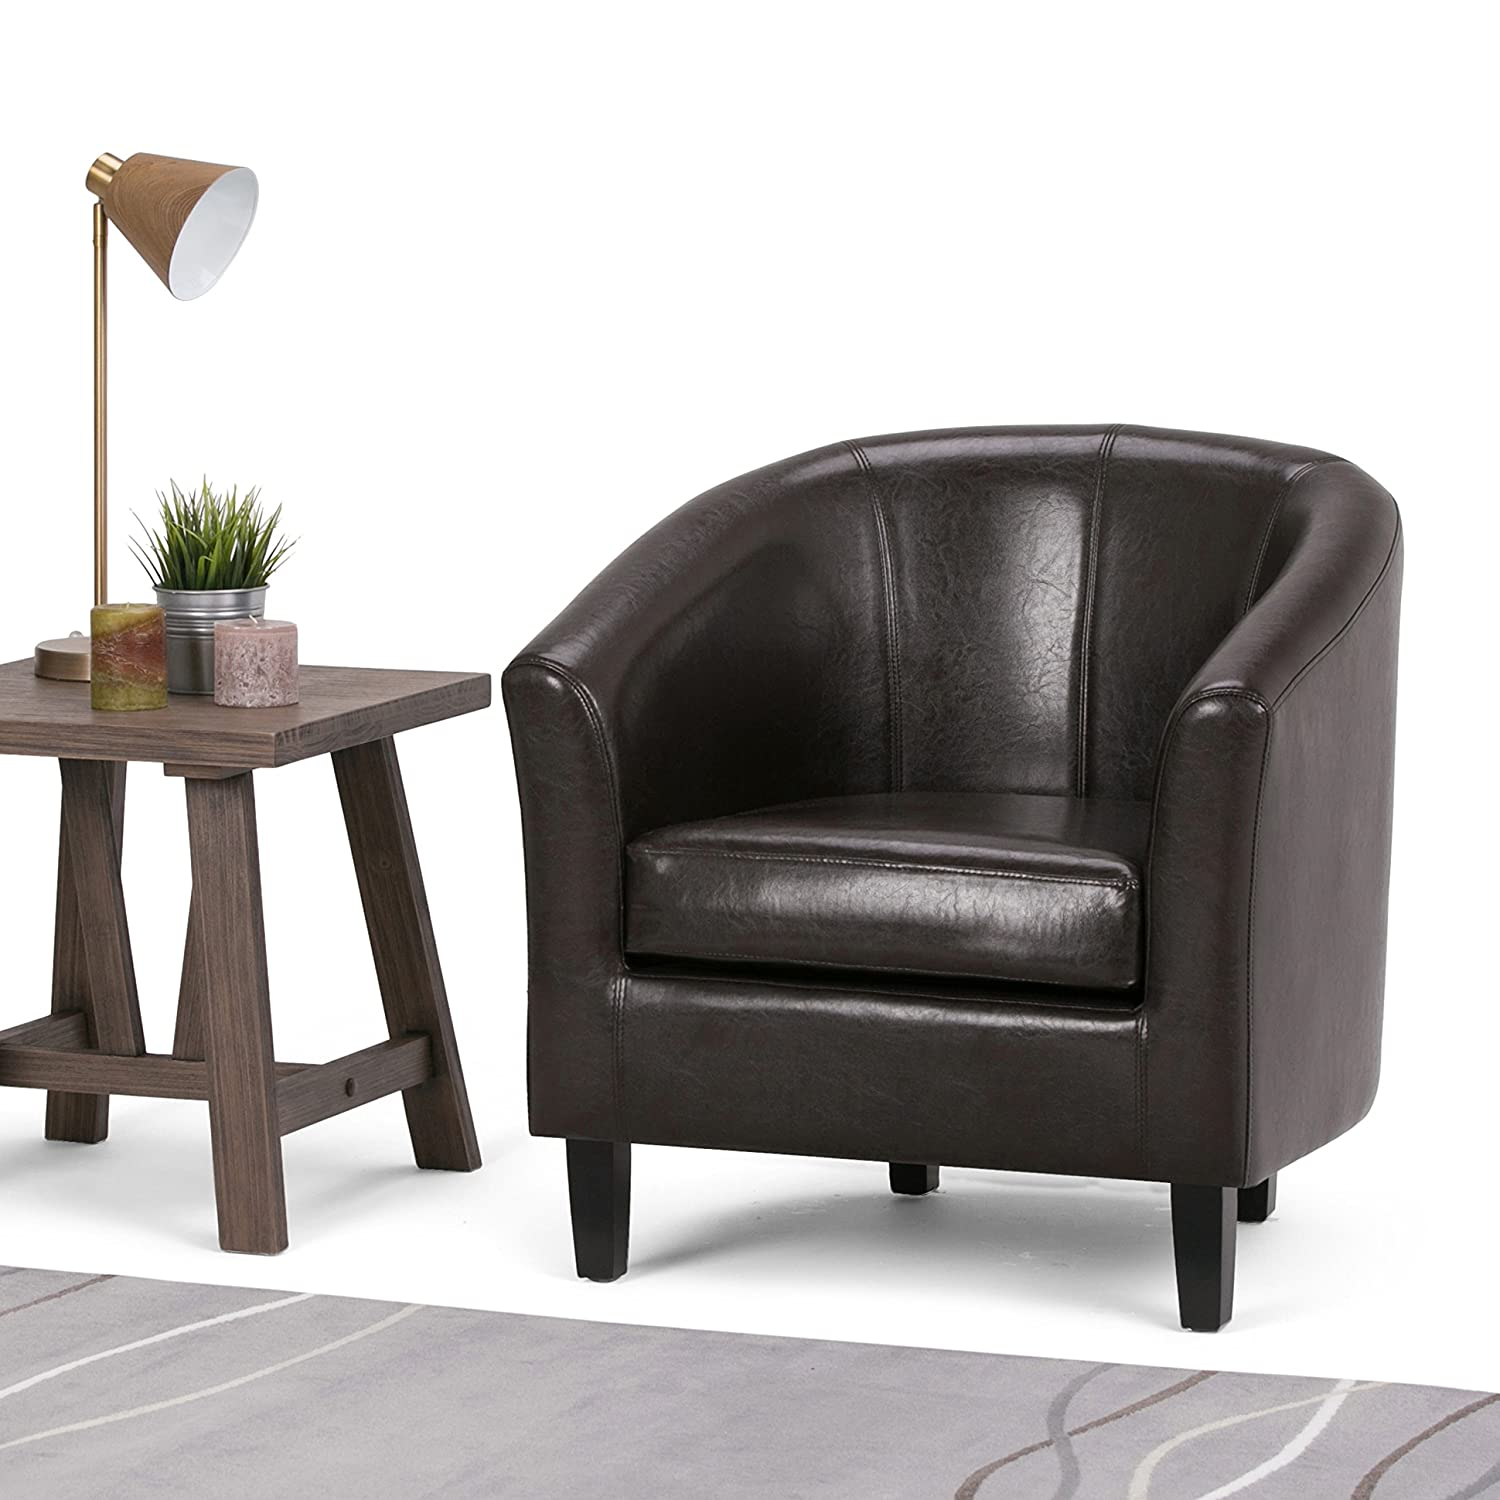 The 5 Best Accent Chairs In 2018: Reviews & Buying Guide 8